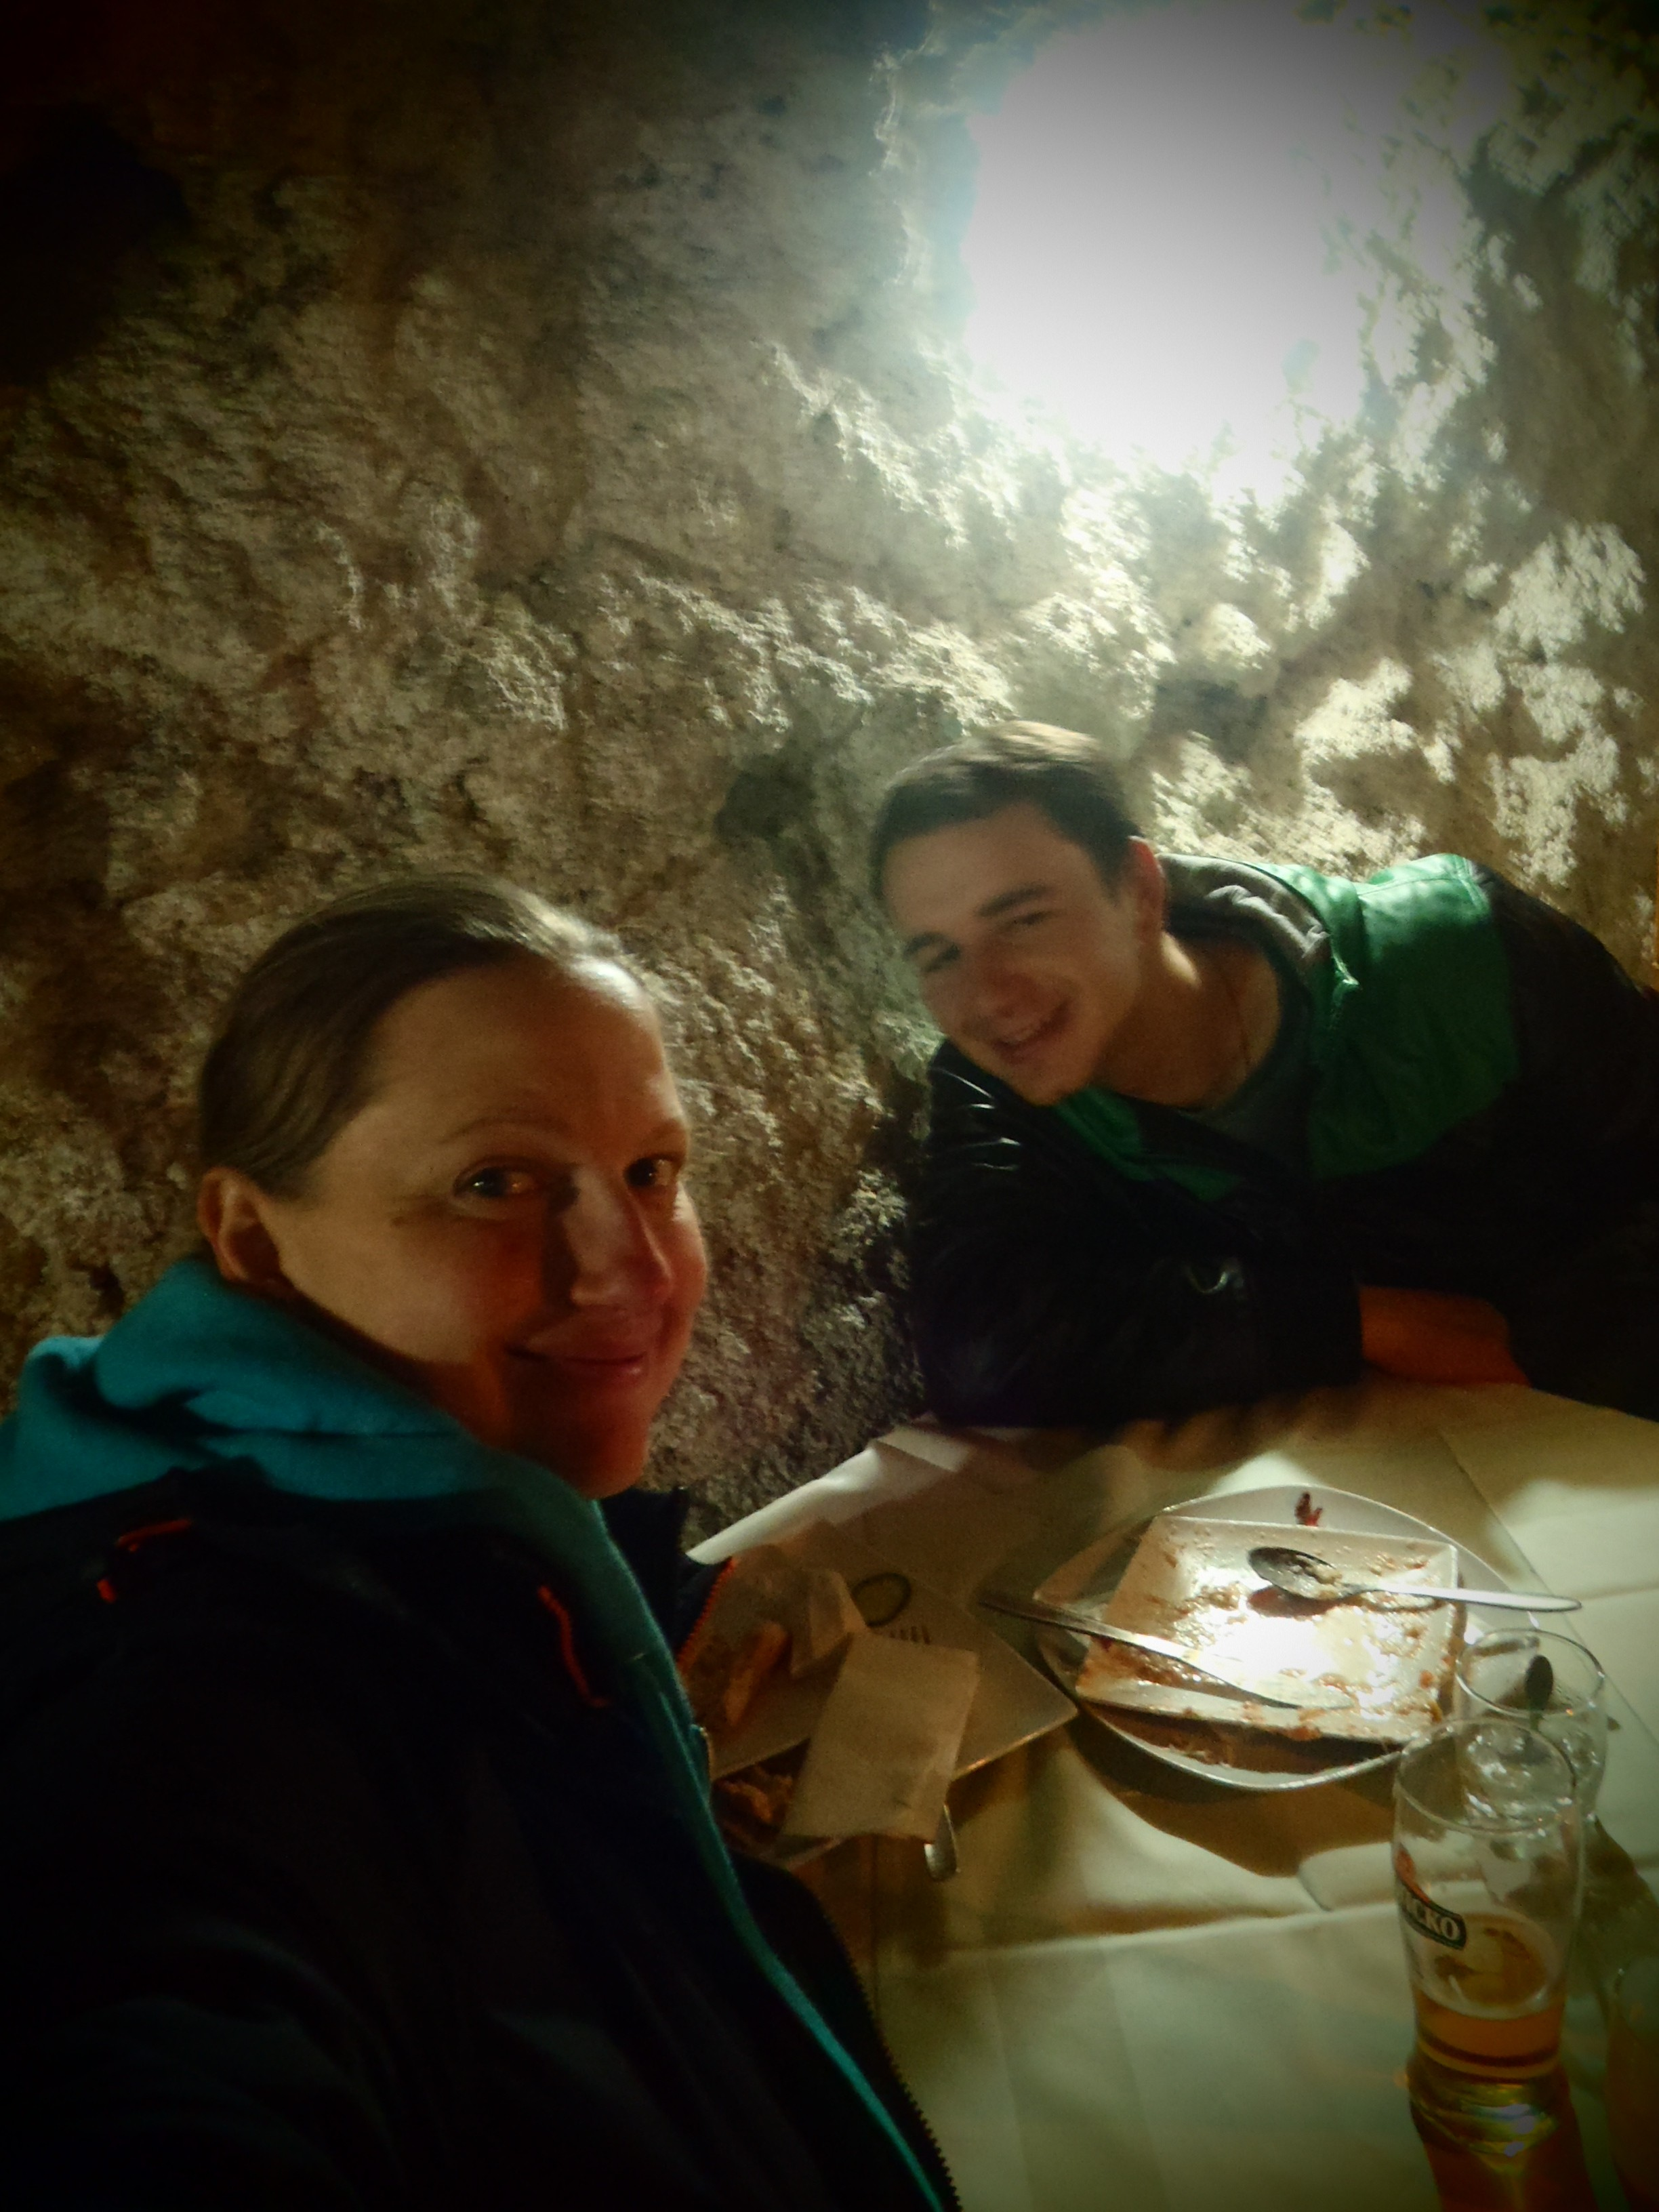 Cave Restaurant; Matka, Republic of Macedonia; 2013